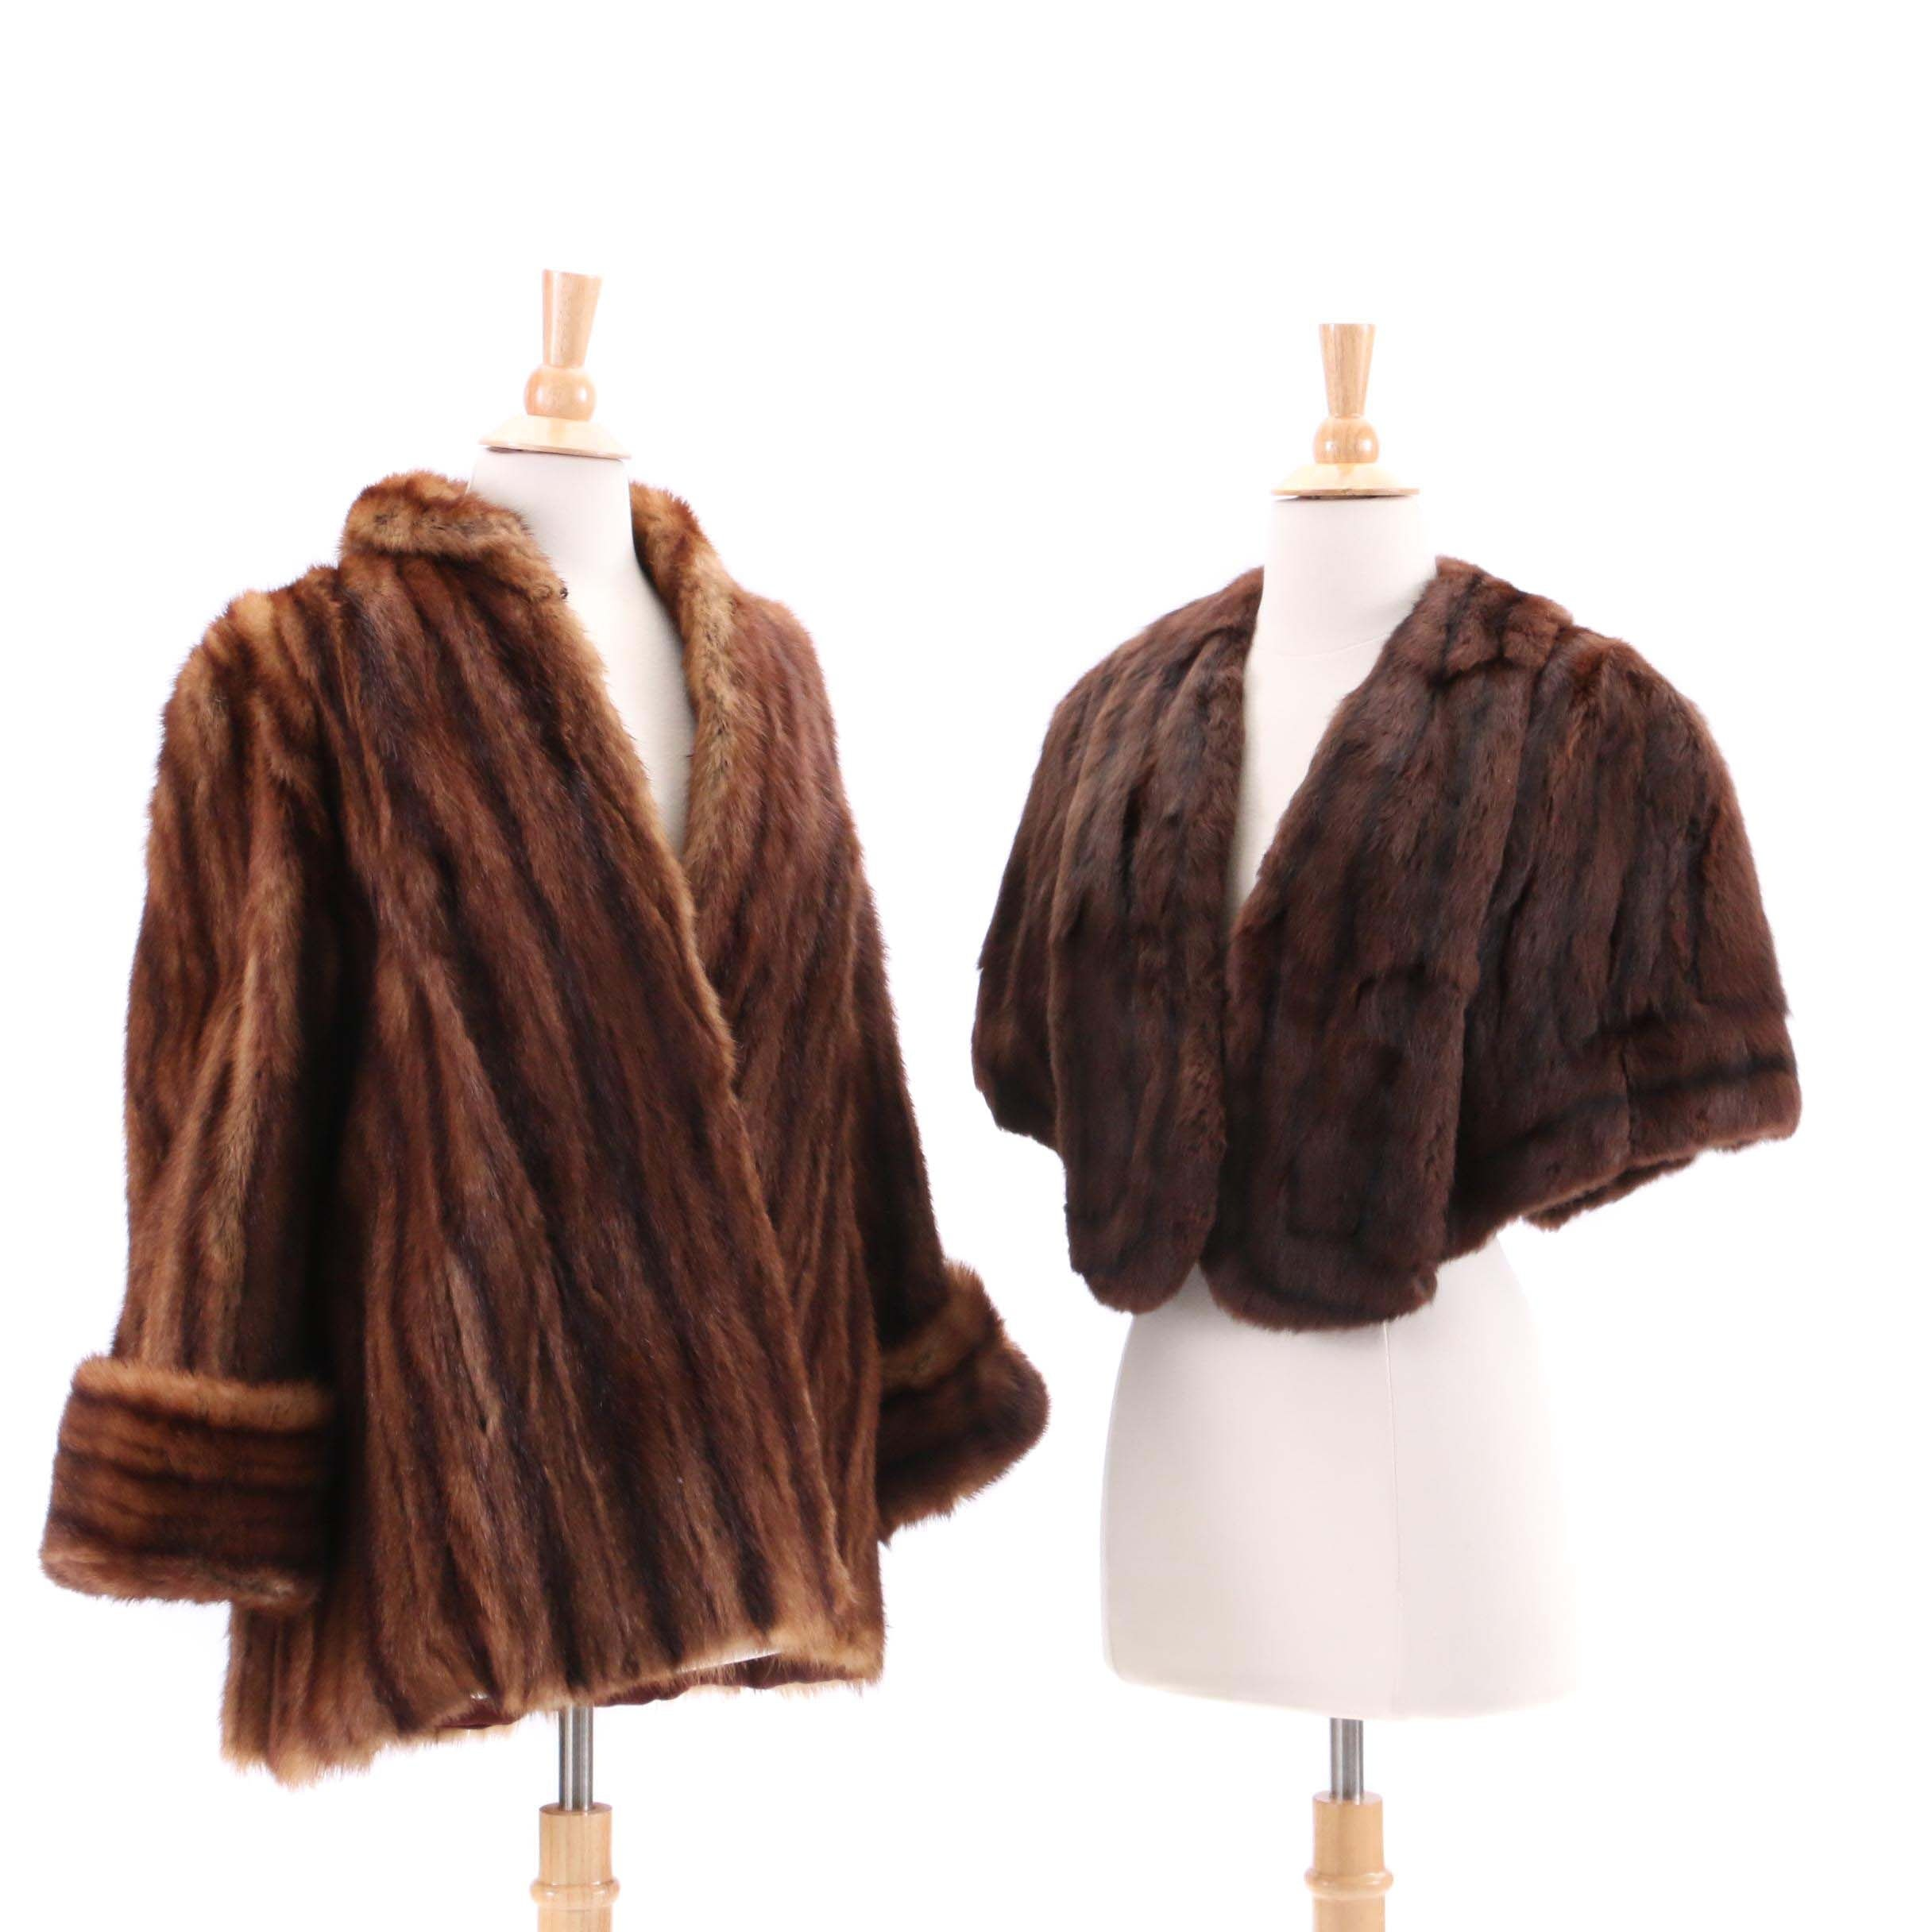 Marmot Fur Coat and Dye Squirrel Fur Stole